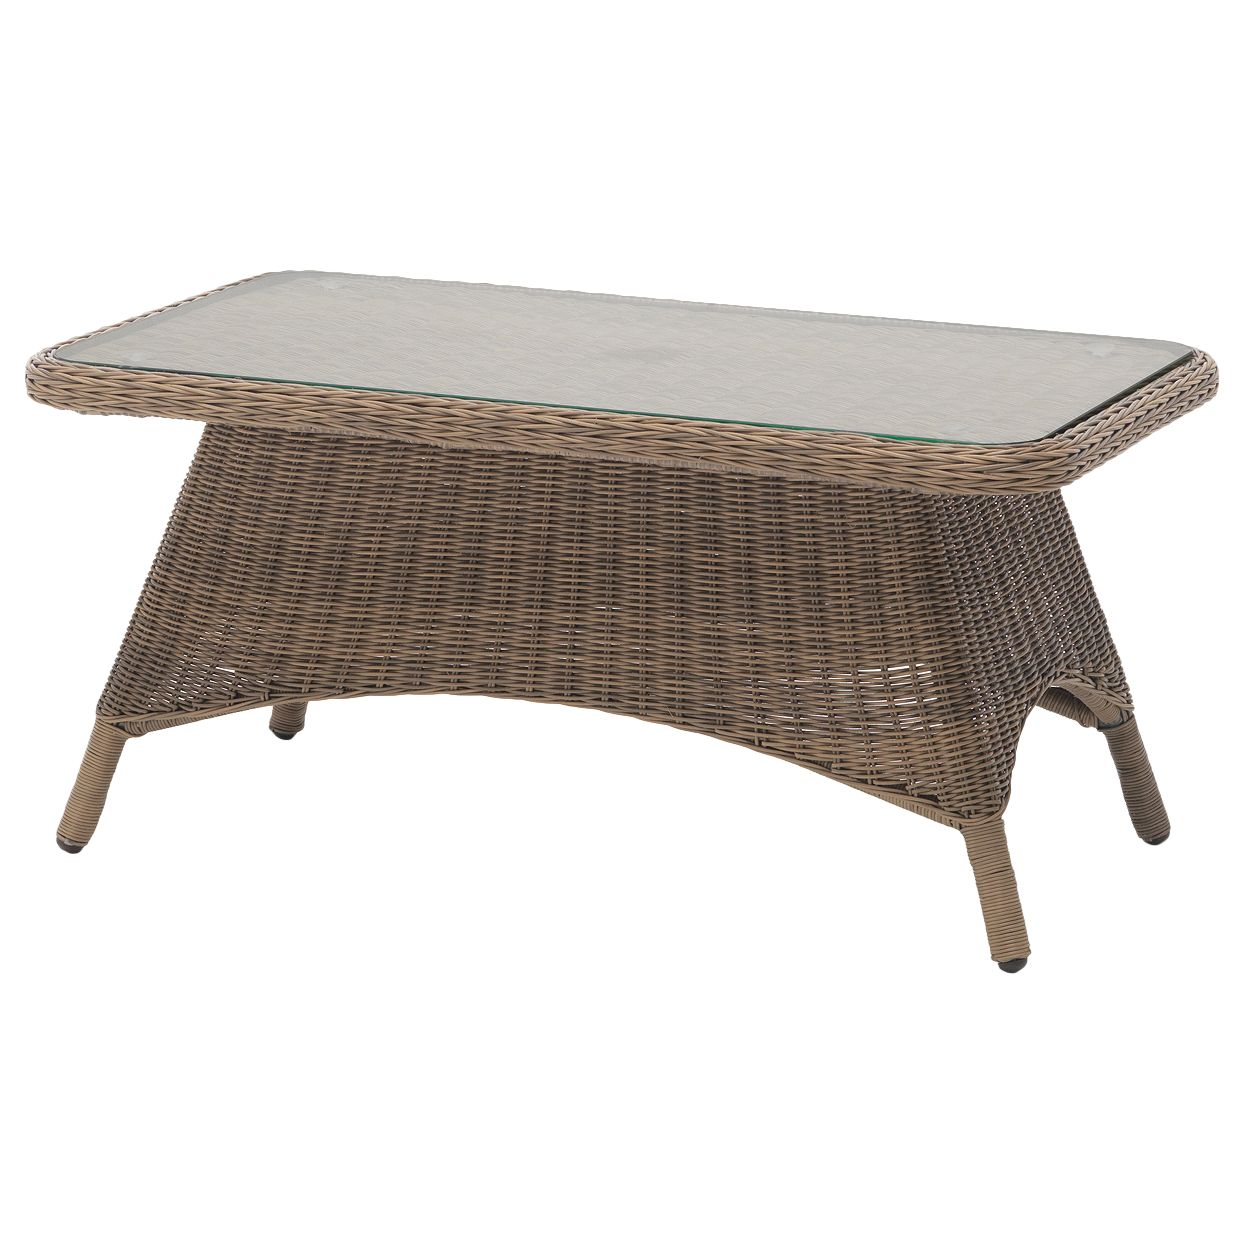 Kettler KETTLER RHS Harlow Carr Garden Coffee Table, Natural